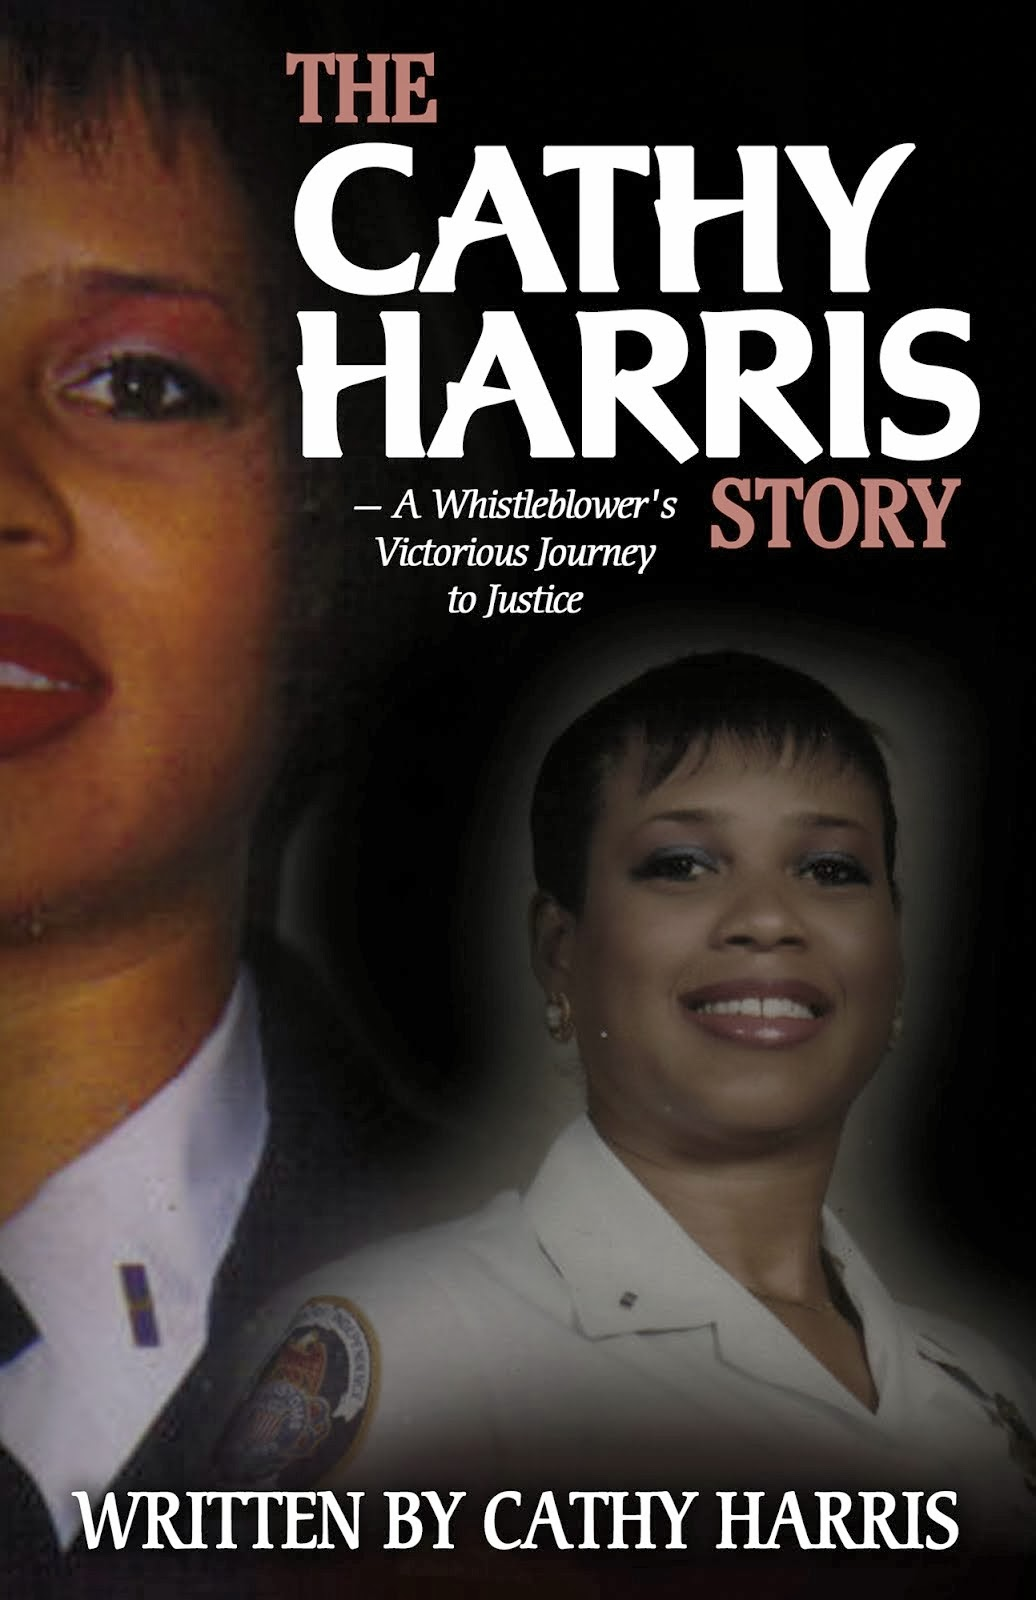 The Cathy Harris Story